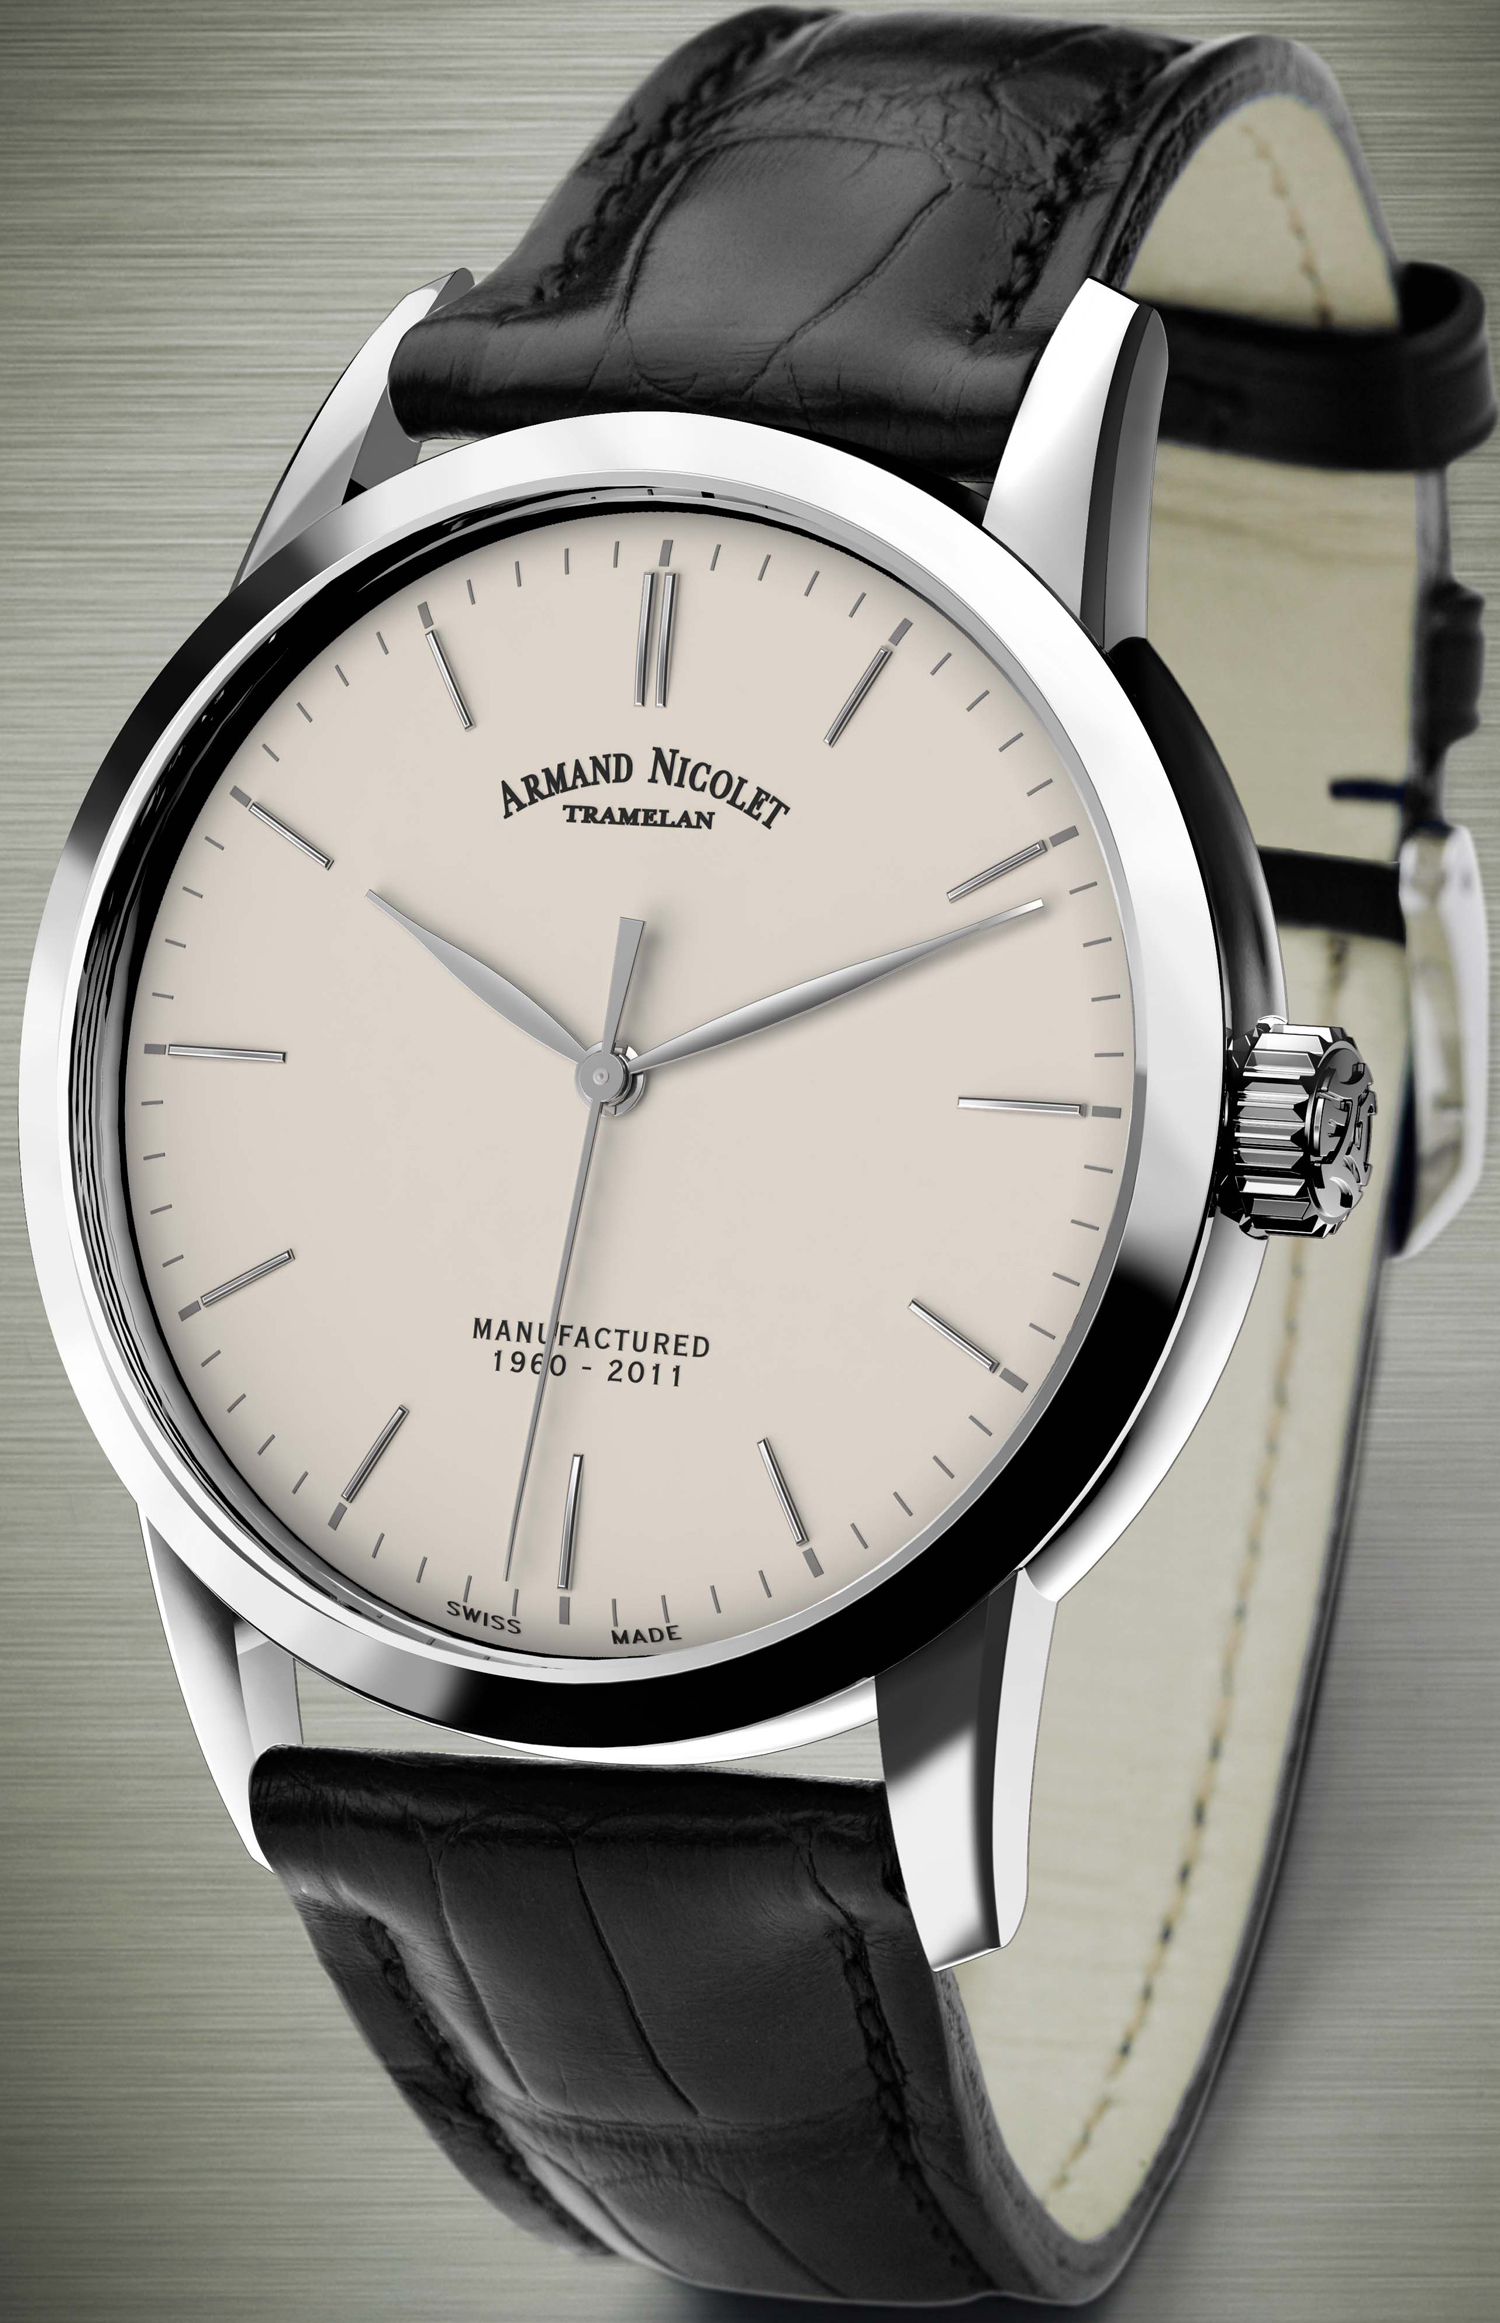 Limited watches of armand nicolet at baselworld 2012 for Armand nicolet watches